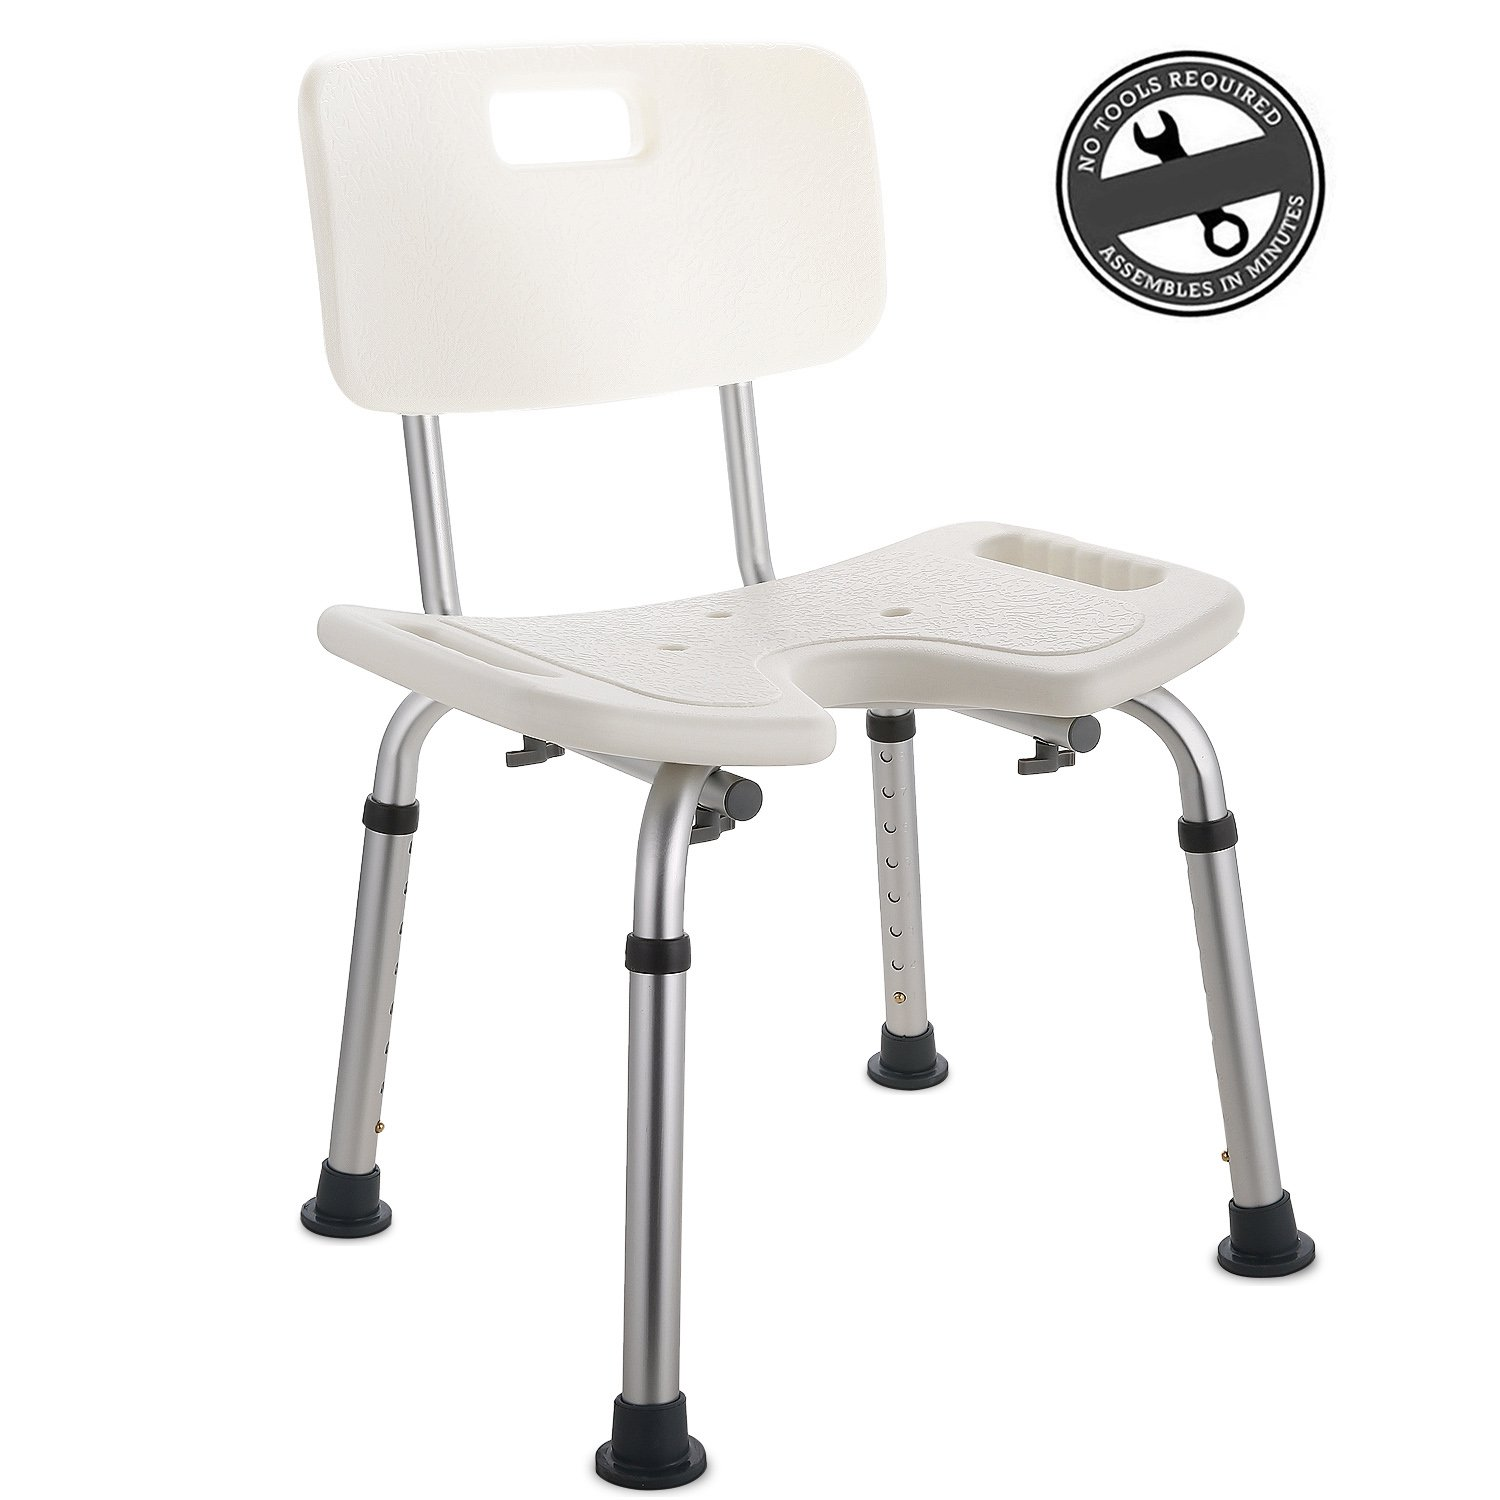 Modrine Shower Stool Seat Chair Medical Bath Stool Bathroom Aid Chair with Unique Groove Design and Removable Back,331lbs Weight Capacity